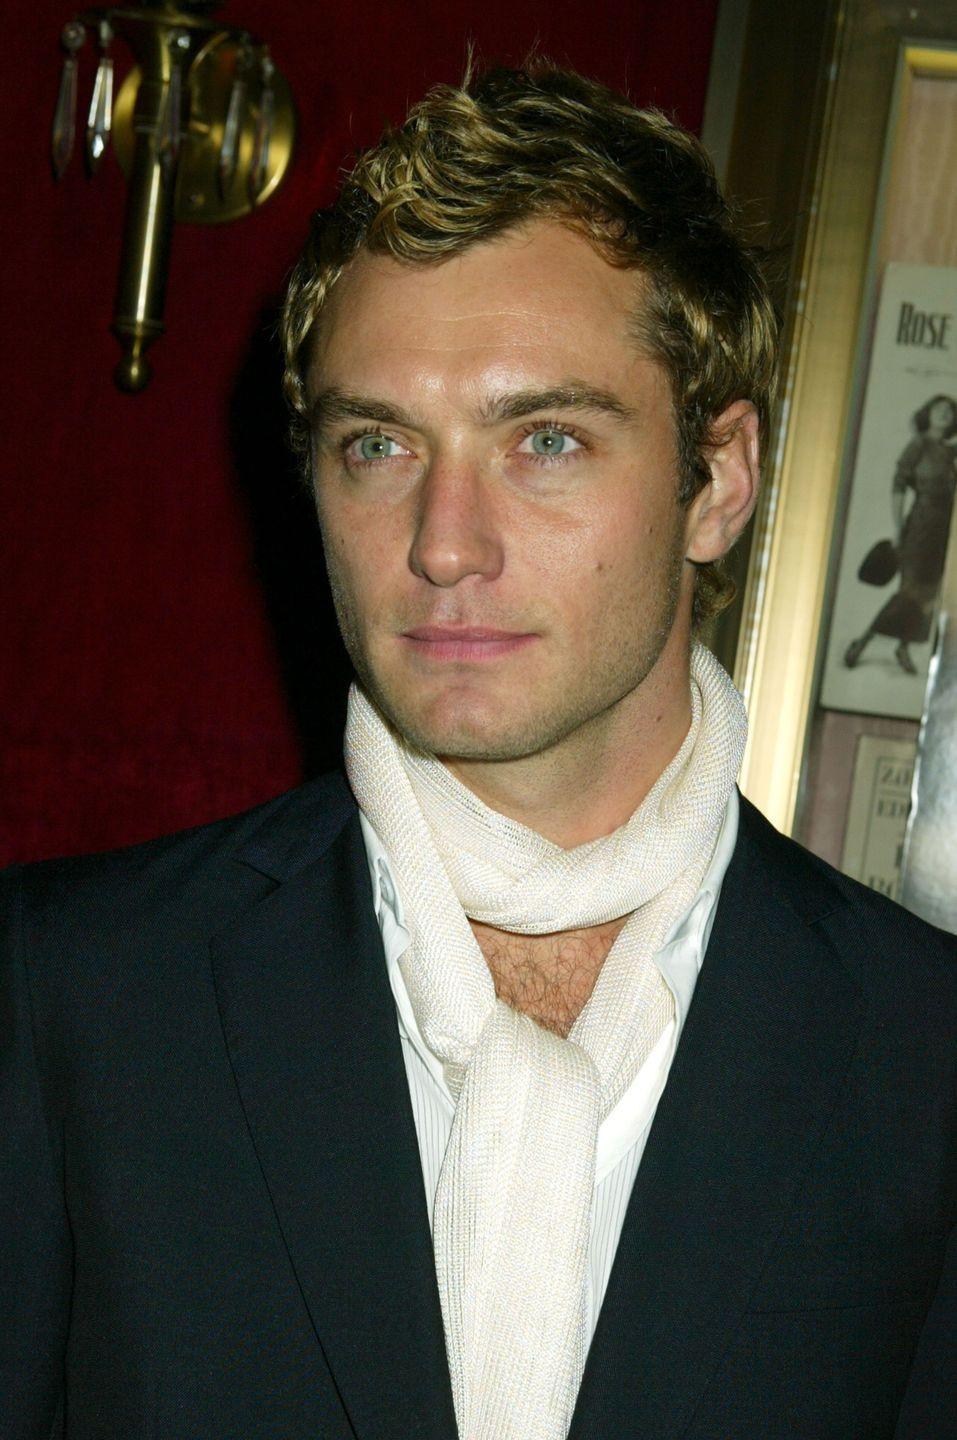 <p>Jude Law was a repeat offender when it came to exposing his chest hair back in the 2000s. Yes, we see it peeping out from your conveniently wrapped scarf, Jude. </p>